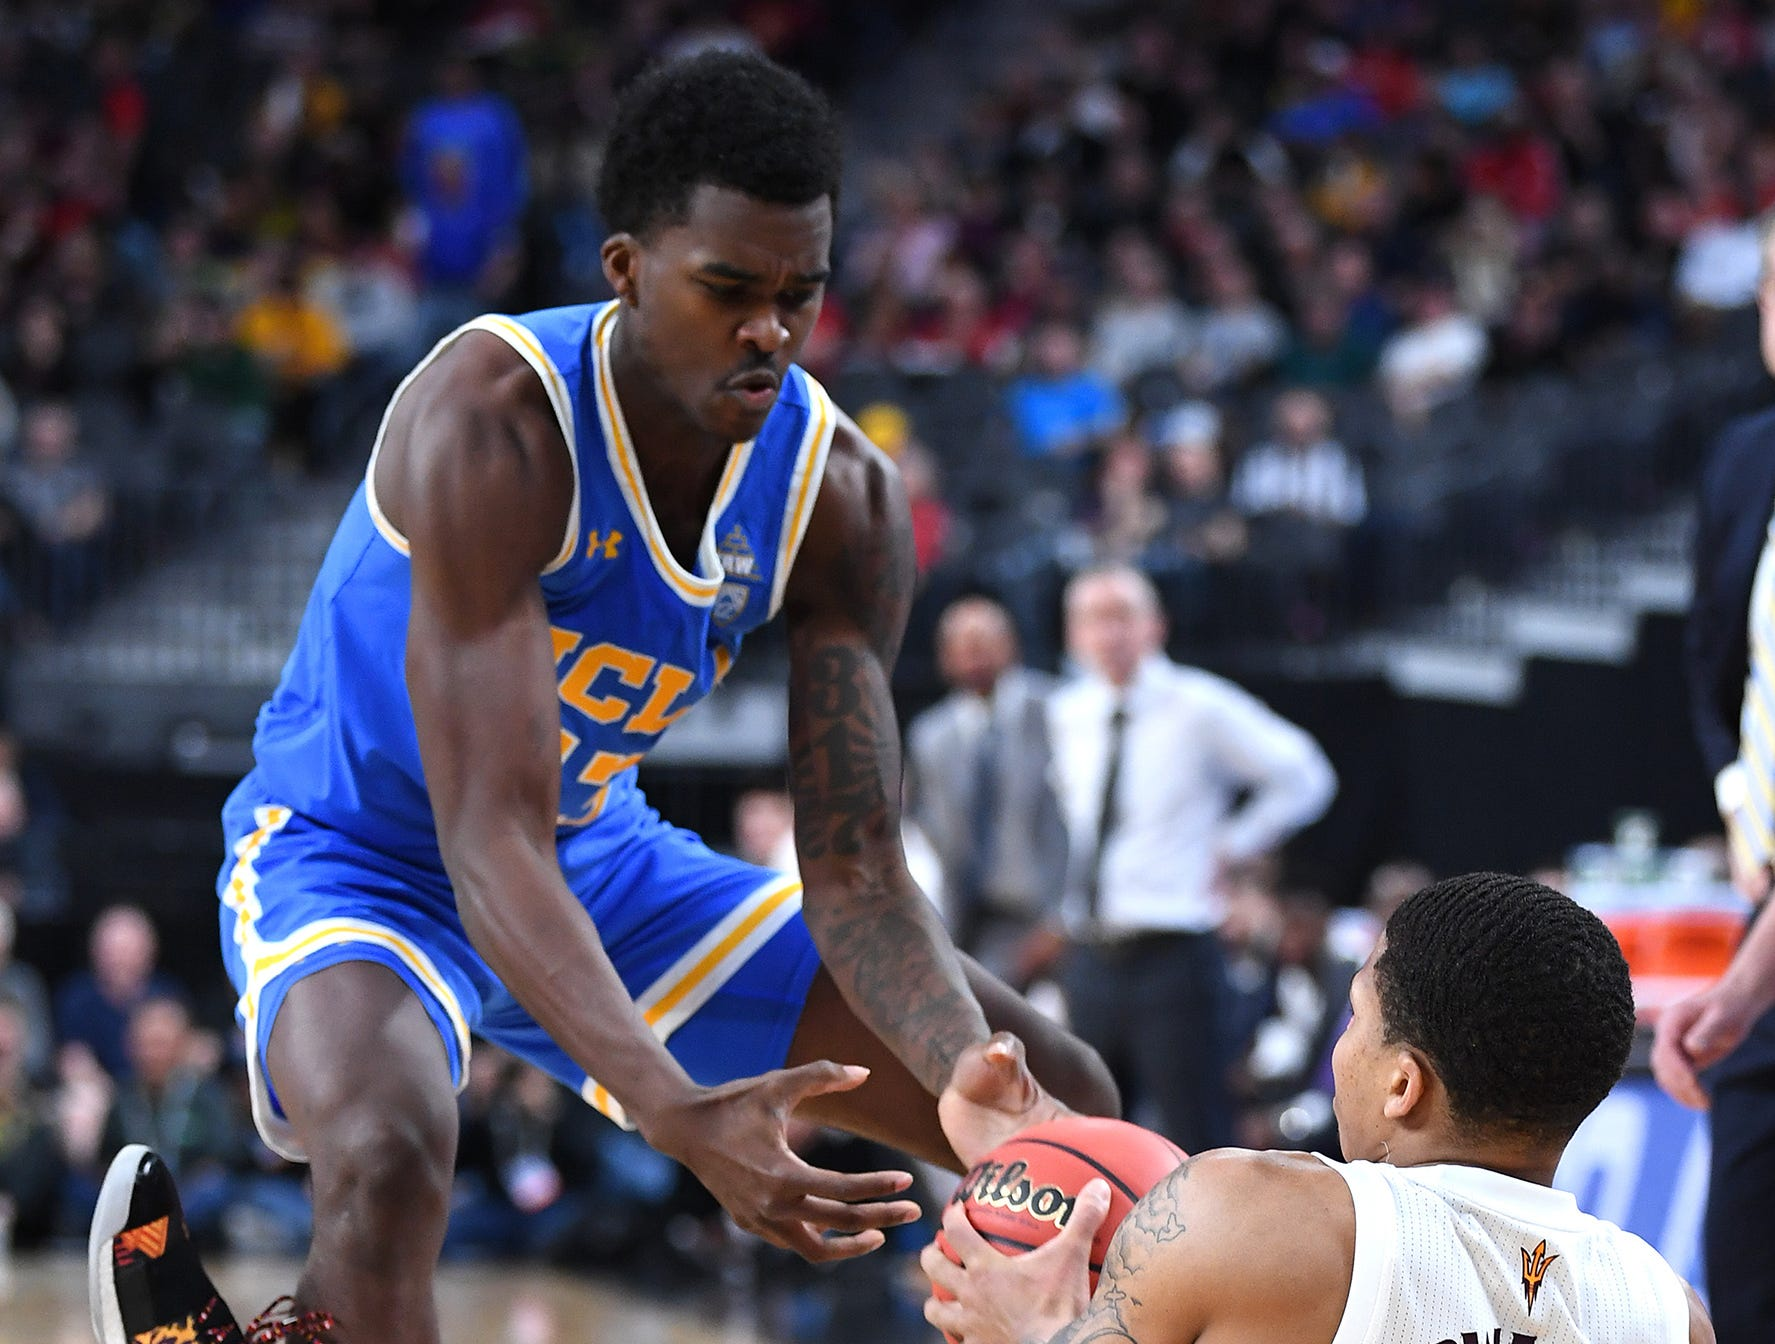 Mar 14, 2019; Las Vegas, NV, United States; UCLA Bruins guard Kris Wilkes (13) looks to steal the ball from Arizona State Sun Devils guard Rob Edwards (2) during the second half of a Pac-12 conference tournament game at T-Mobile Arena.